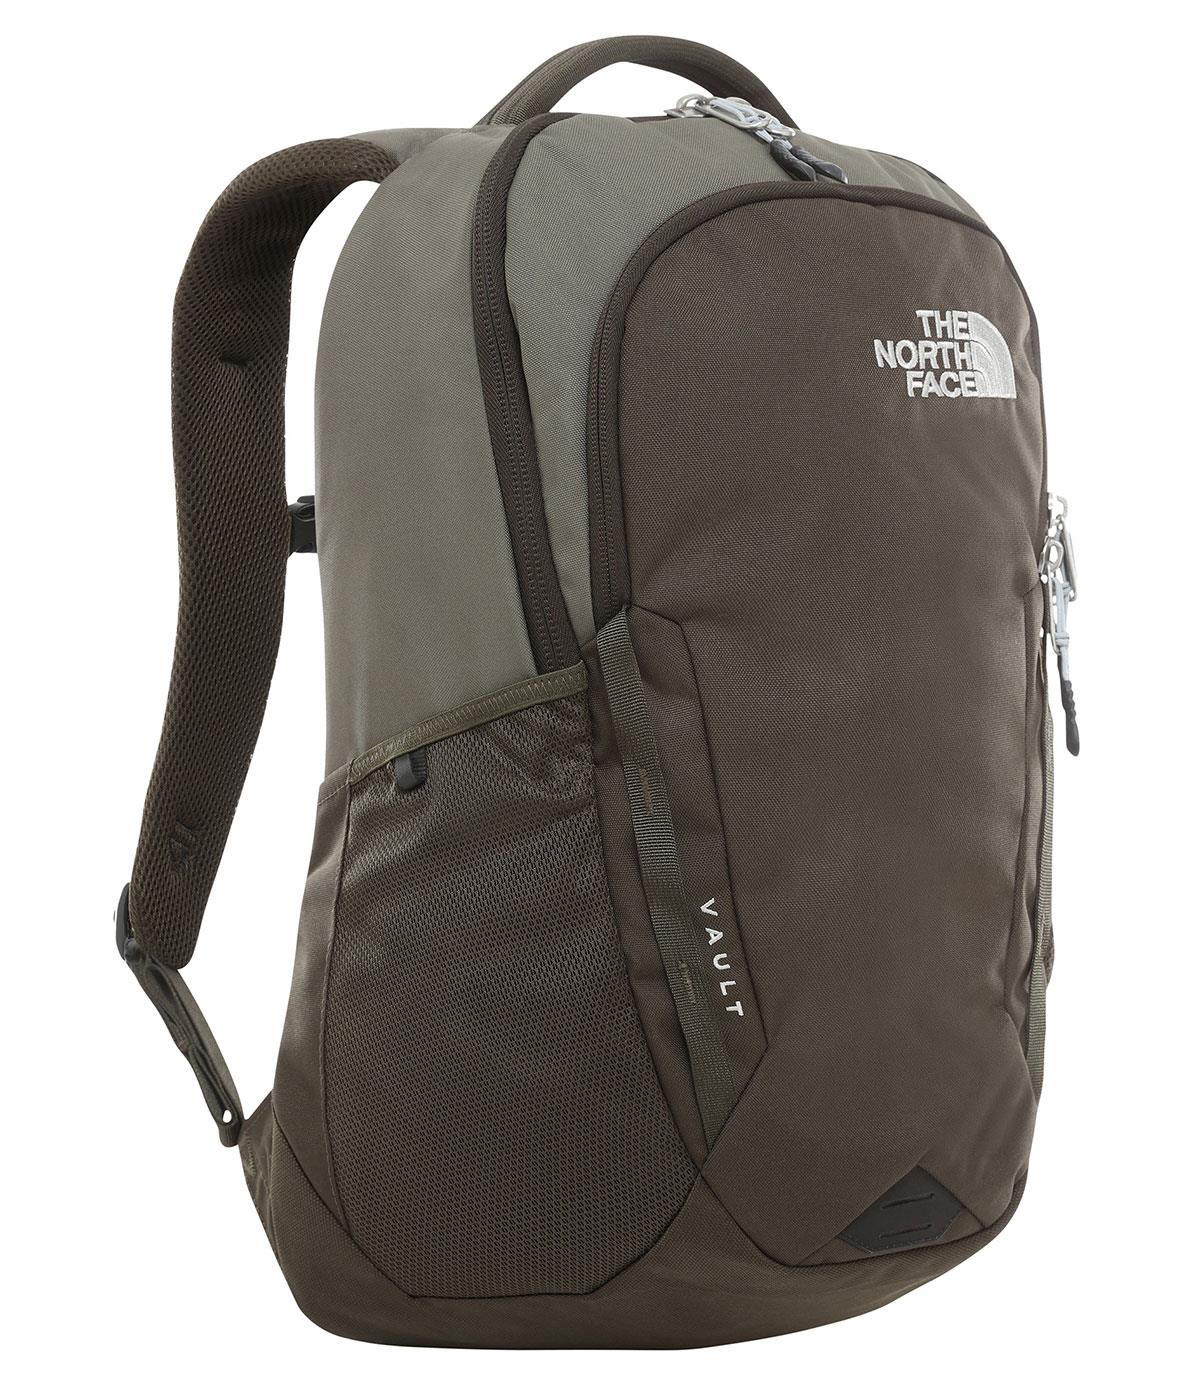 The North Face Vault Nf0A3Kv9Em91